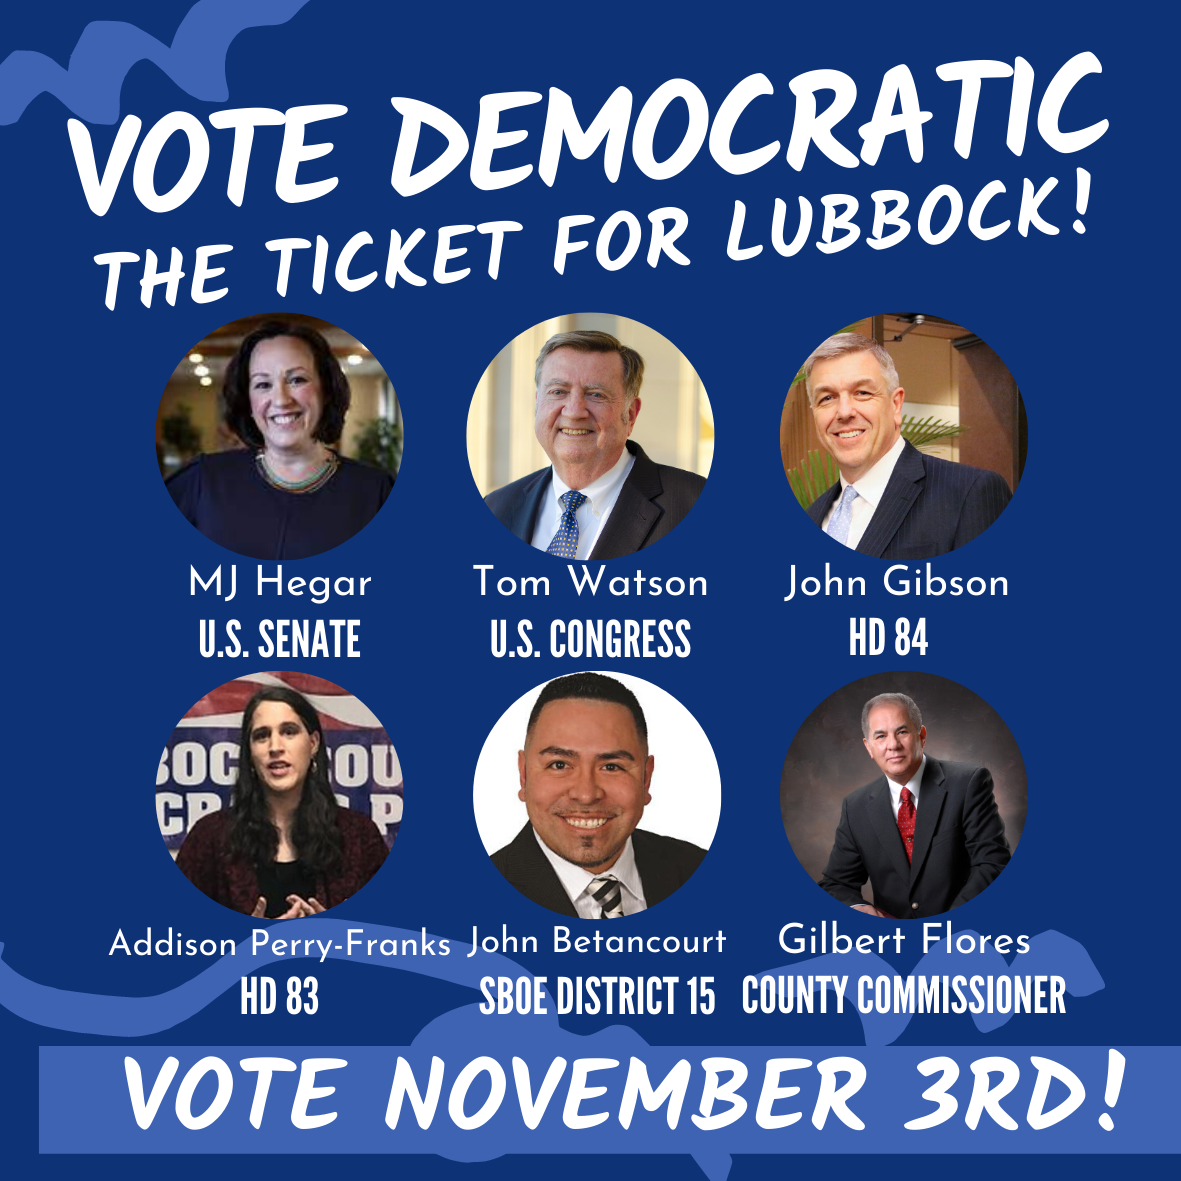 Lubbock Democratic Ticket